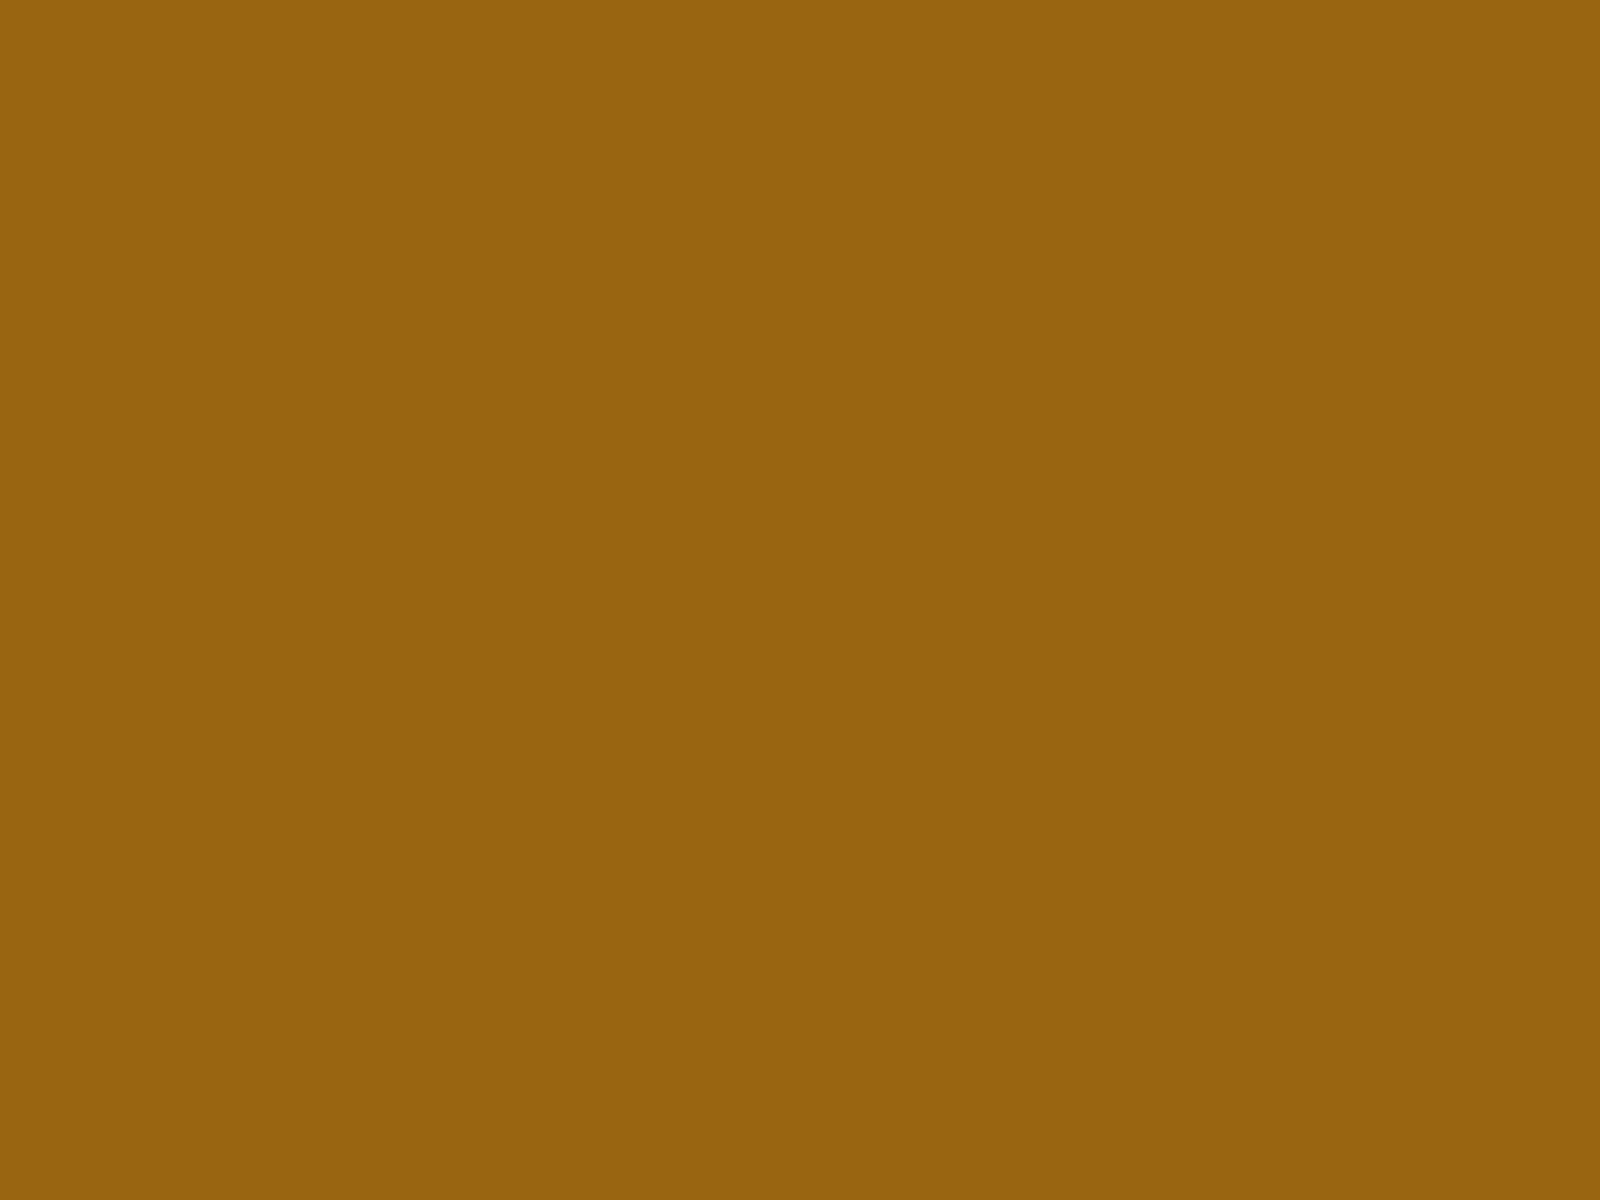 1600x1200 Golden Brown Solid Color Background